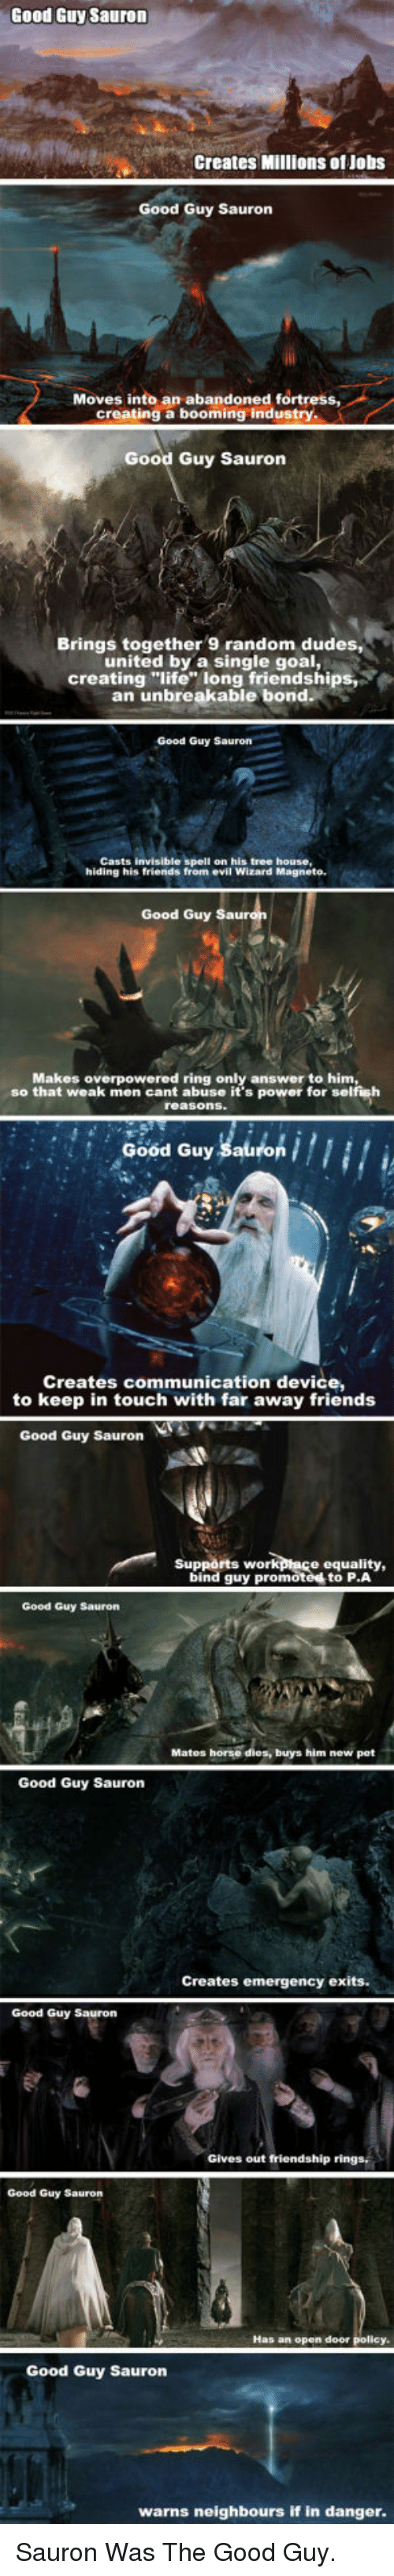 "Friends, Life, and Work: Good Guy Sauron  Creates Millions of Jobs  Good Guy Sauron  Moves into an abandoned fortress  creating a booming industry  Good Guy Sauron  Brings together 9 random dudes,  united by a single goal,  creating ""life long friendships  an unbreakable bond  Good Guy Sauron  Casts invisible spell on his tree house,  hiding his friends from evil Wizard Magneto  Good Guy  Makes overpowered ring only answer to him  so that weak men cant abuse it's power for selfish  Good Guy Sauron  Creates communication device,  to keep in touch with far away friends  Good Guy Sauron  Supports work  ptace equality,  bind guy promoted to P.A  Good Guy Sauron  Mates horse dies, buys him new pet  Good Guy Sauron  Creates emergency exits.  Good Guy Sauron  Gives out friendship rings,  Good Guy Sauron  Has an open door  Good Guy Saurorn  warns neighbours if in danger <p>Sauron Was The Good Guy.</p>"